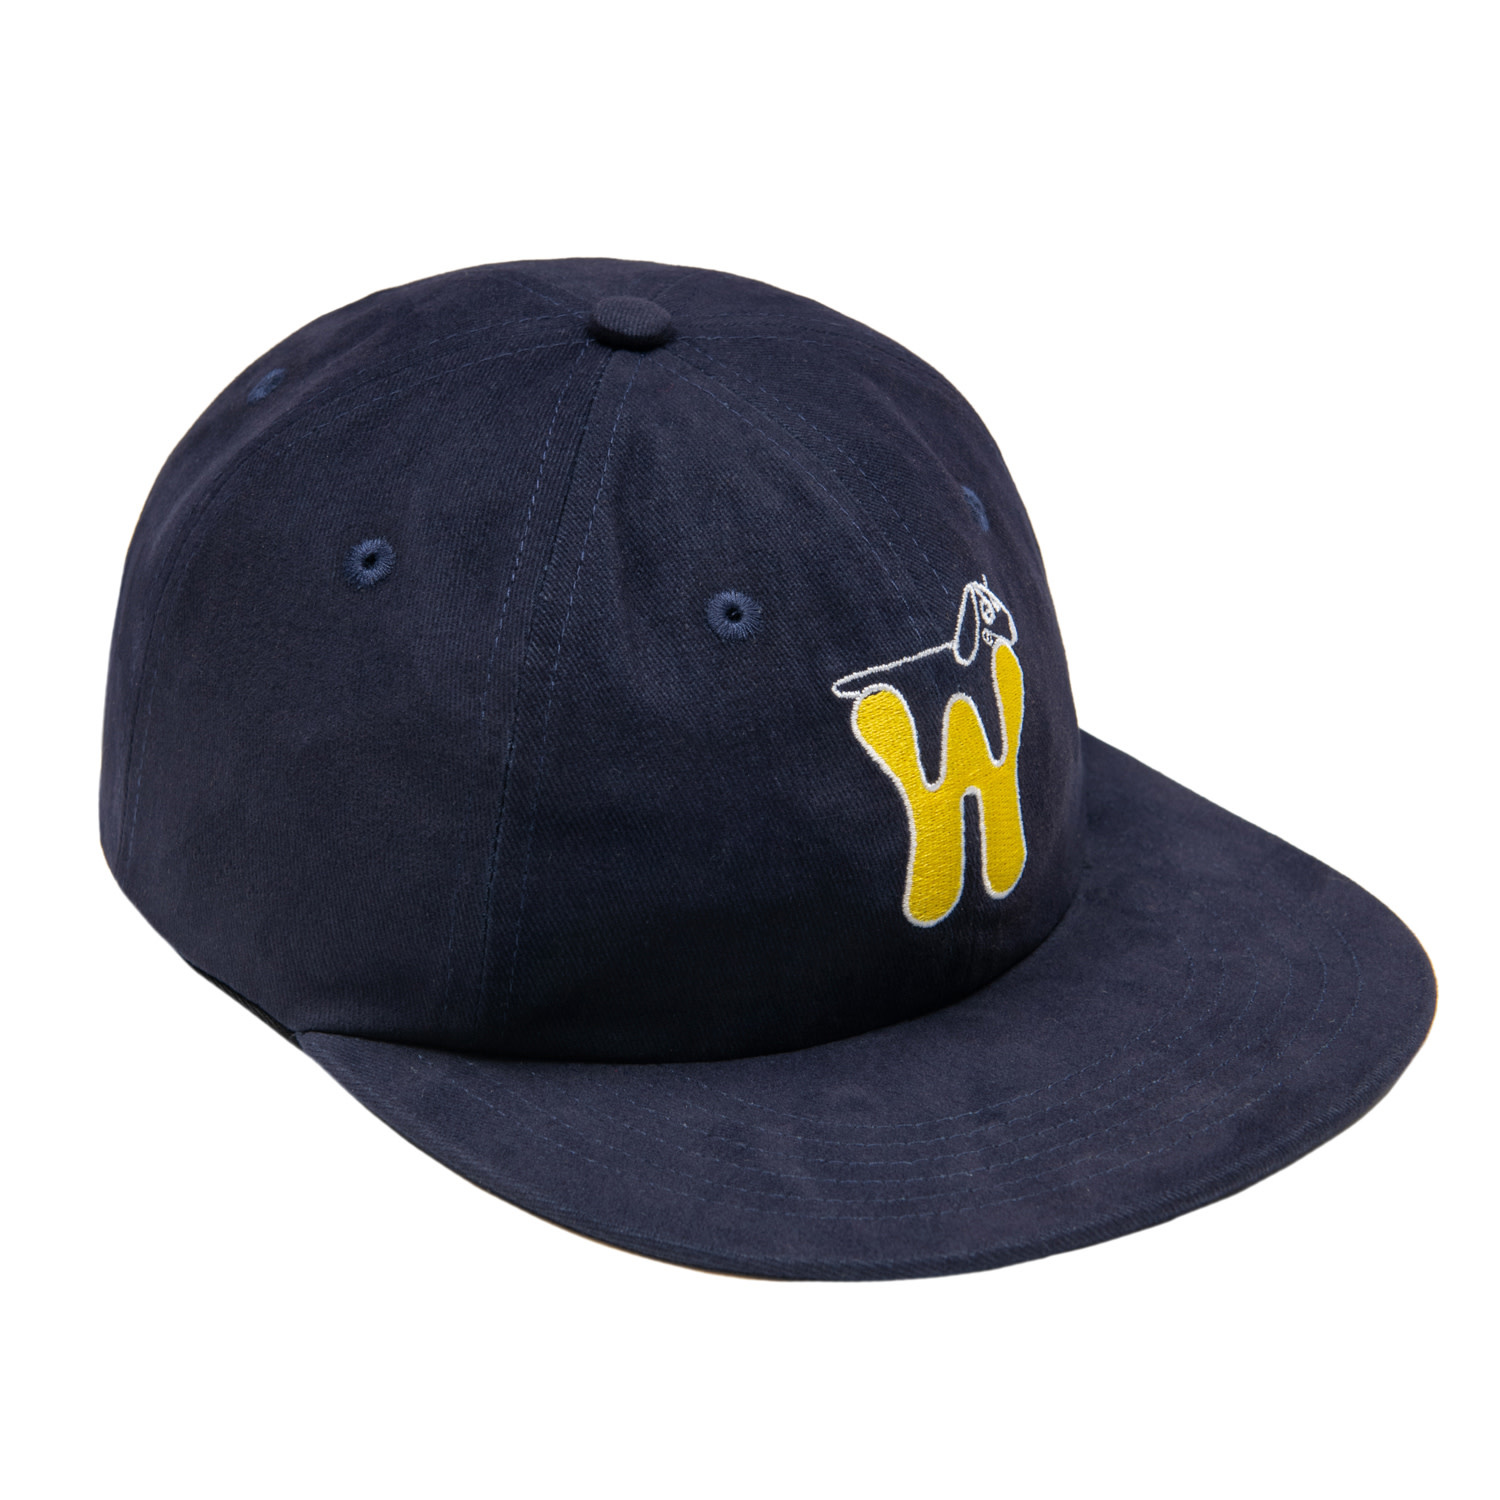 WKND Doggy Navy Cap